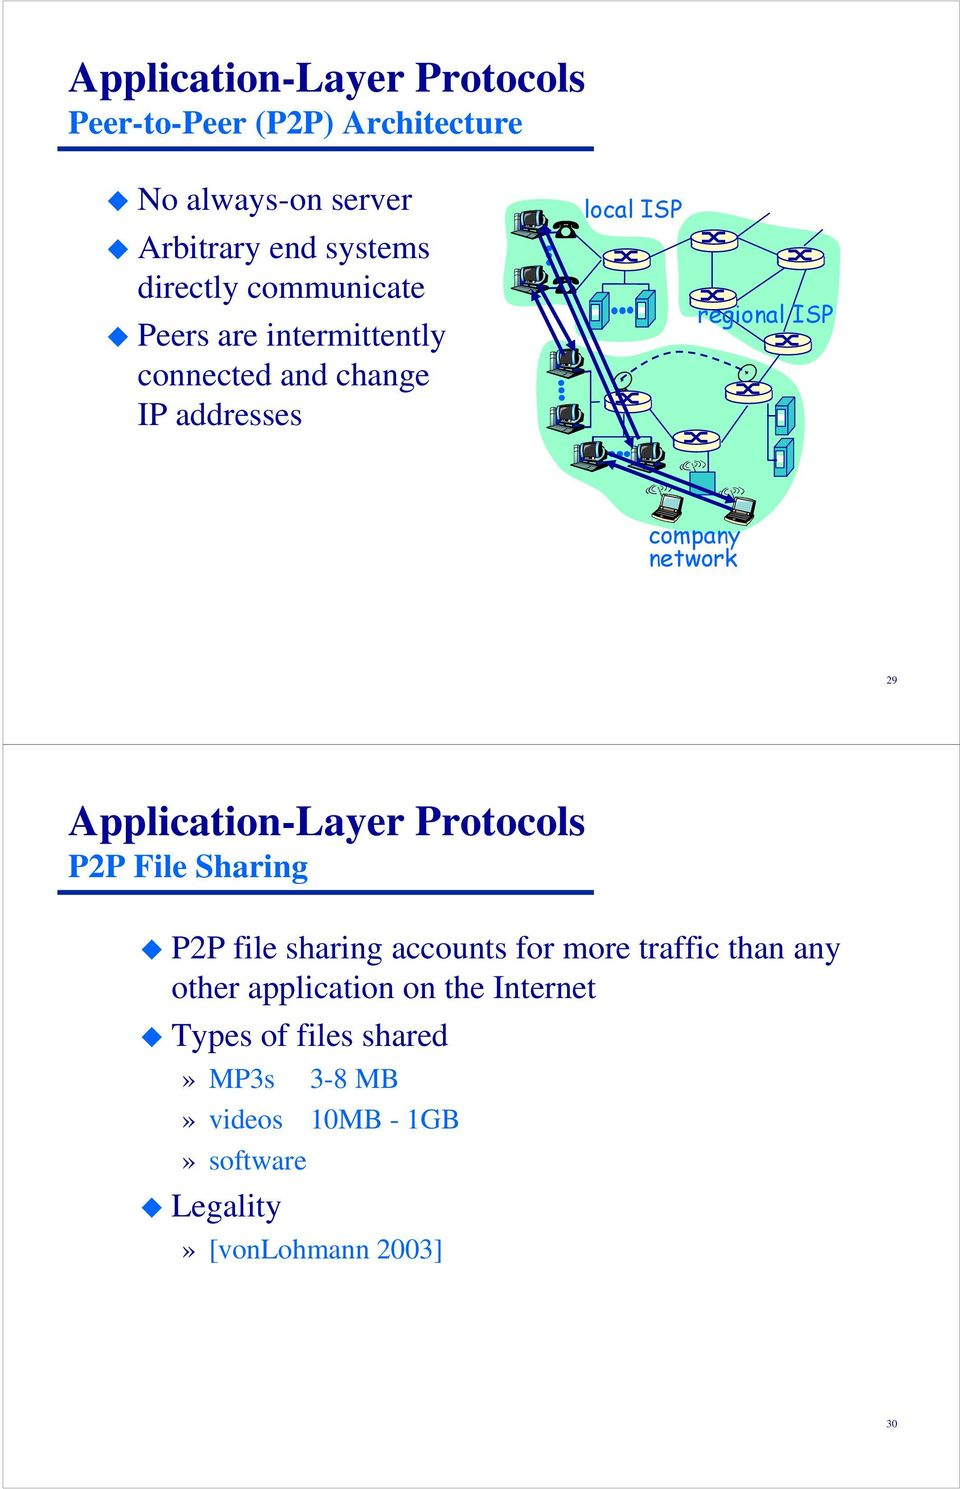 Application-Layer Protocols P2P File Sharing P2P file sharing accounts for more traffic than any other